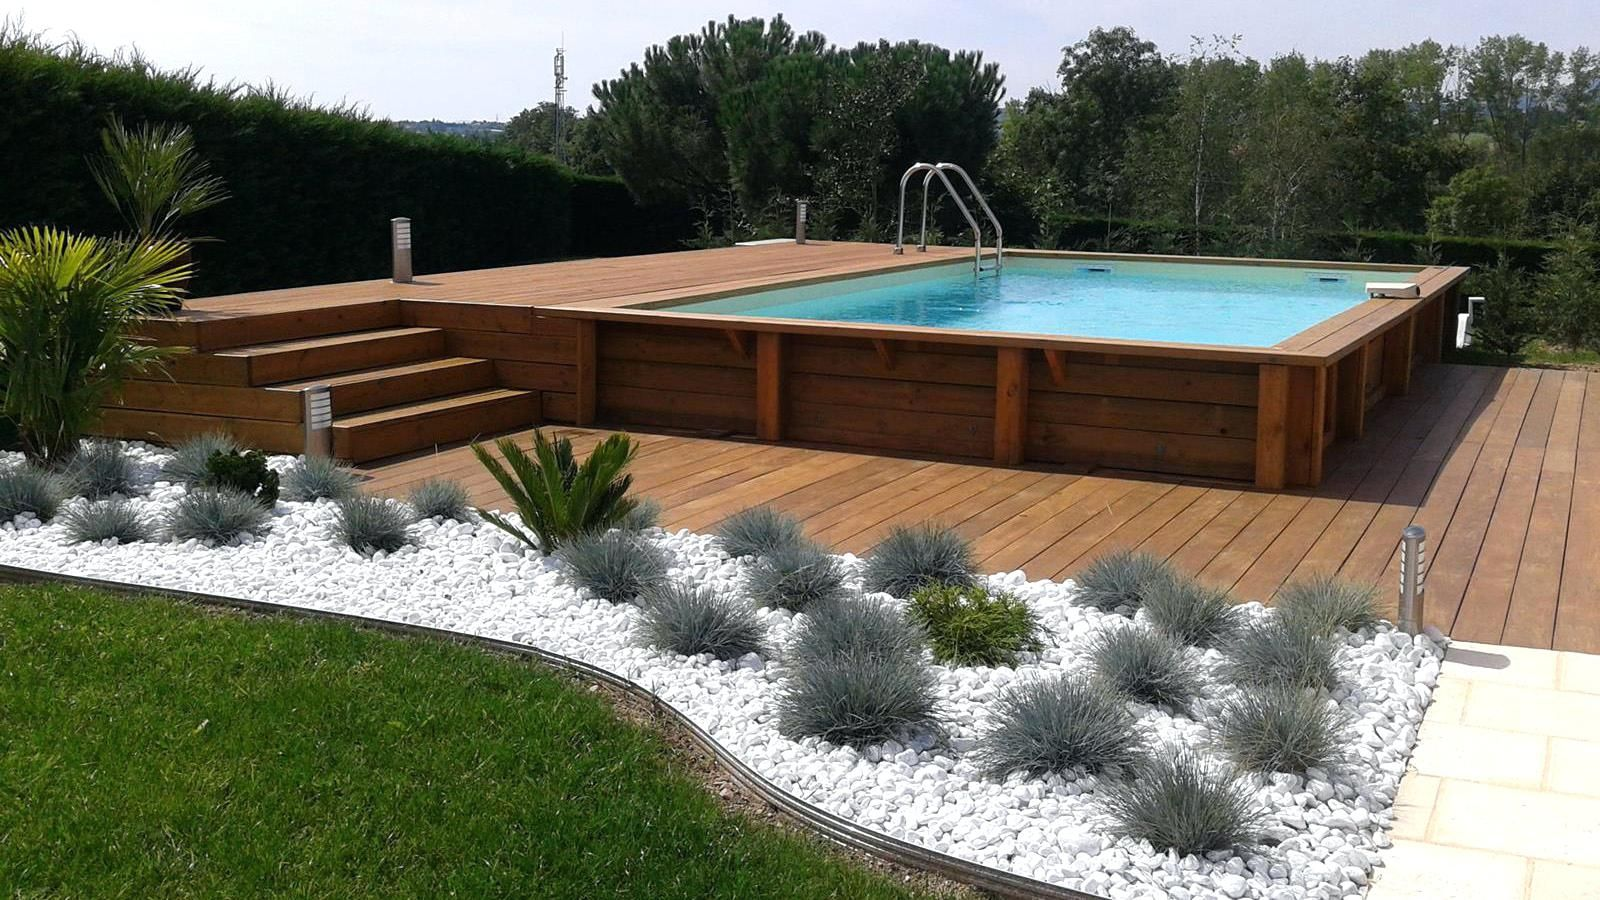 Terrasse Bois Piscine Hors Sol Et Enterrace Exemple Chantier